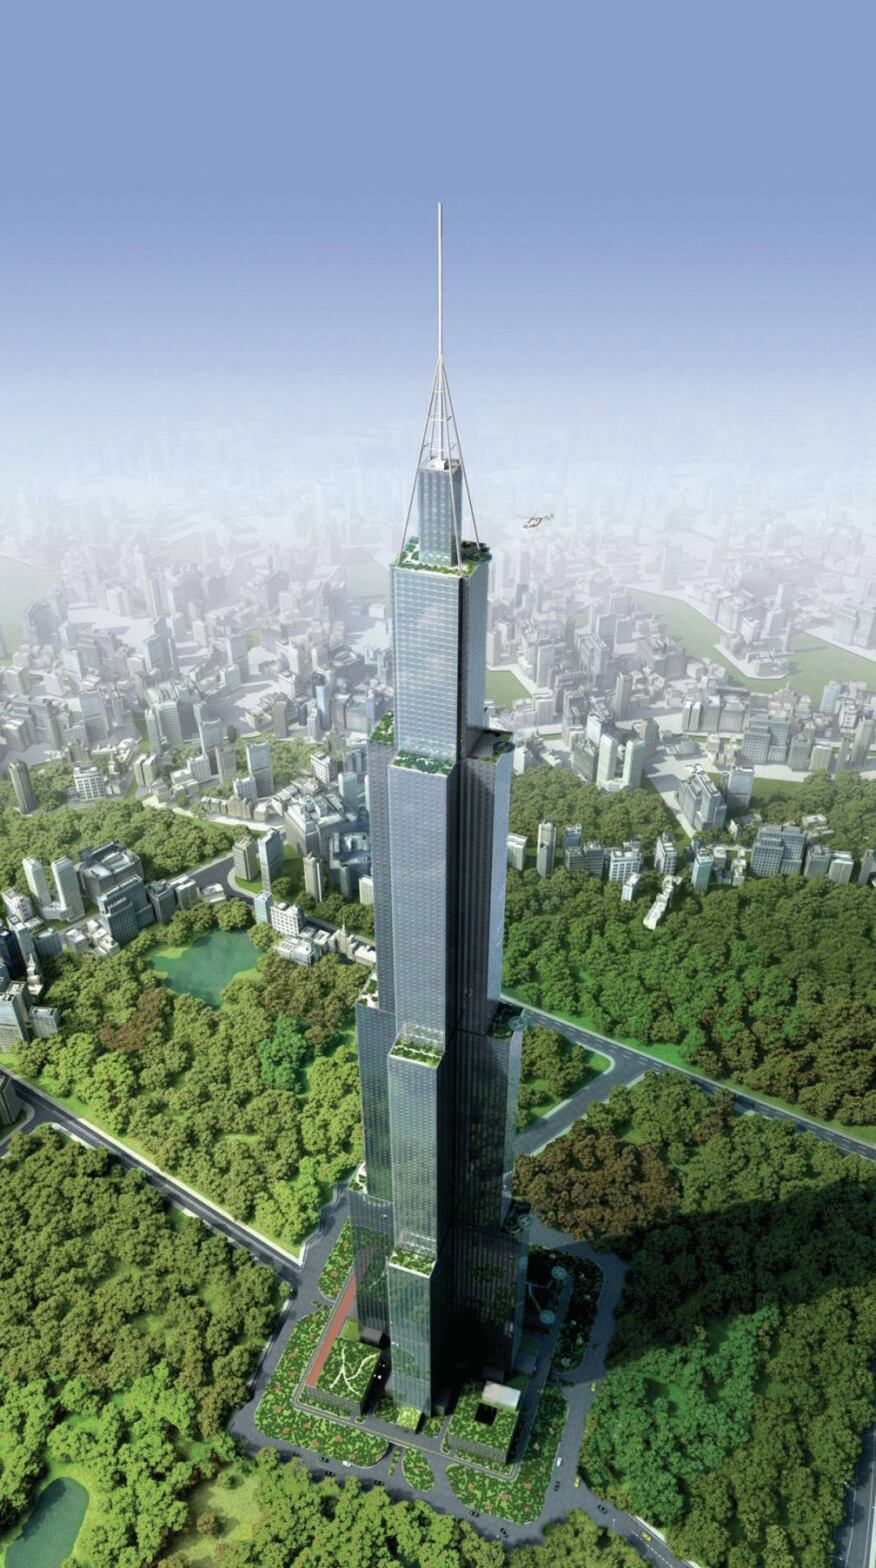 A rendering of Sky City in Changsha, China.